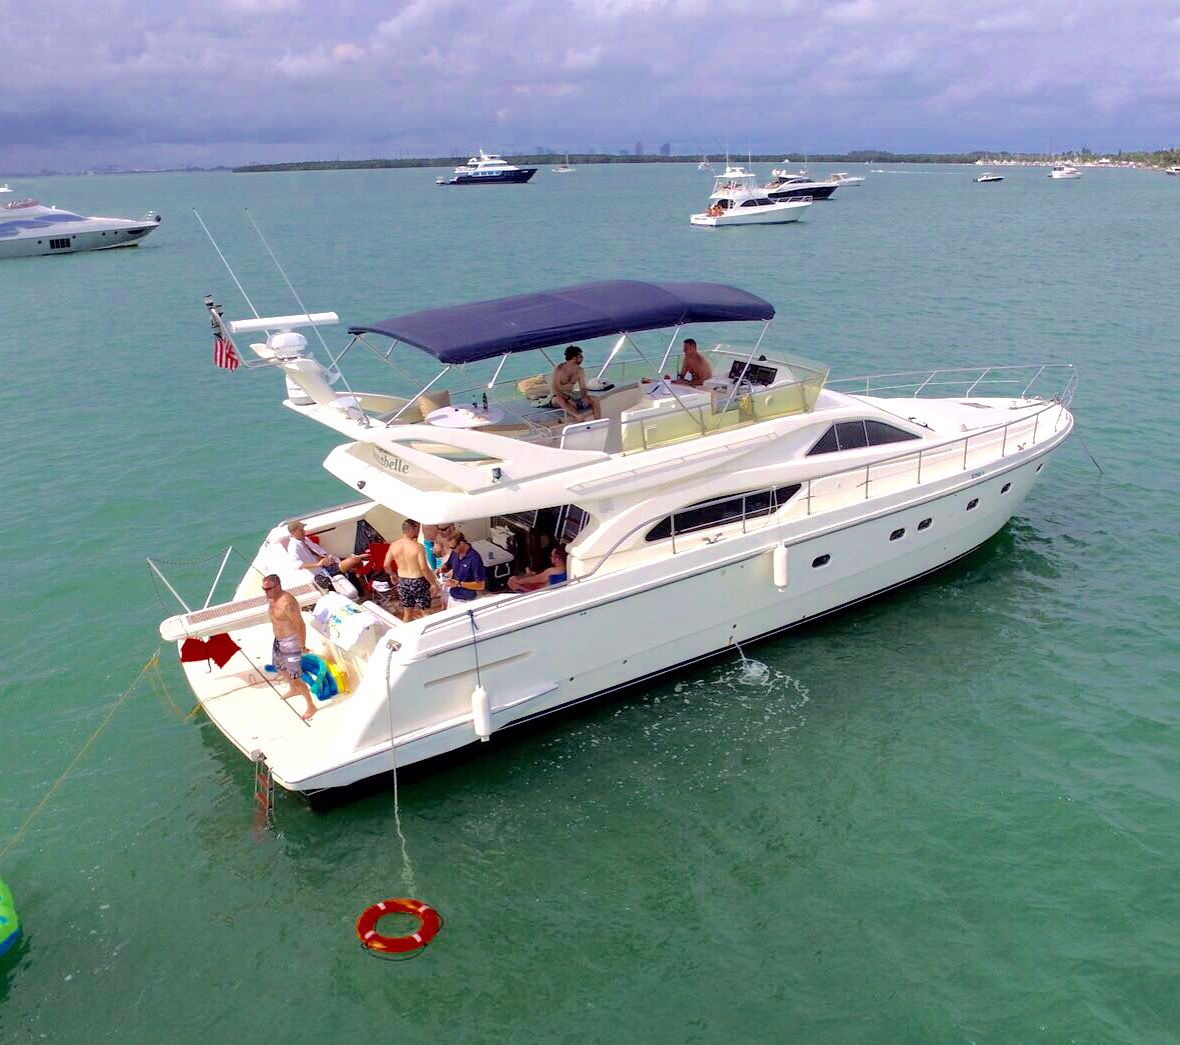 Yacht Party Als Miami Boat Experts Charter 12 Guests 2k Call Us